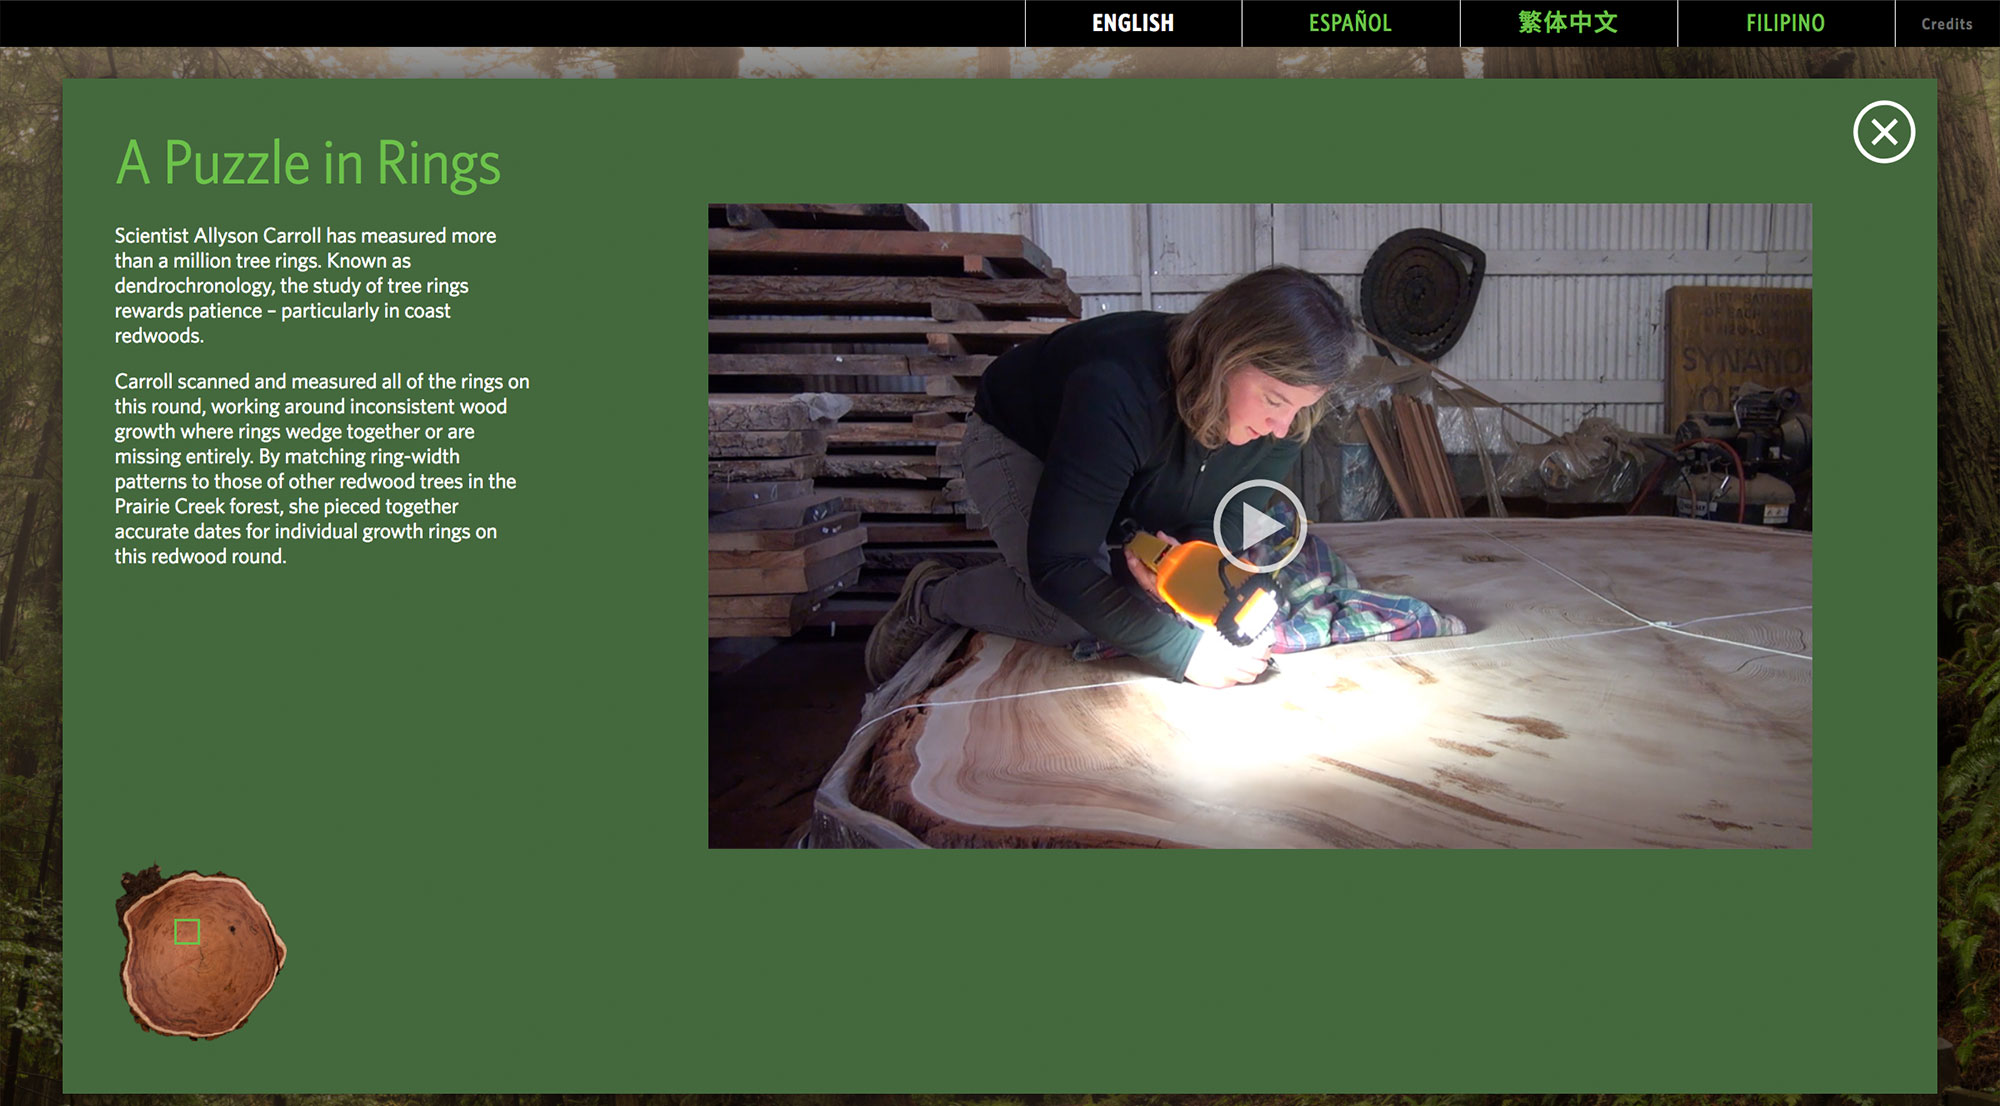 Video about dendrochronology, the scientific process of tree ring analysis